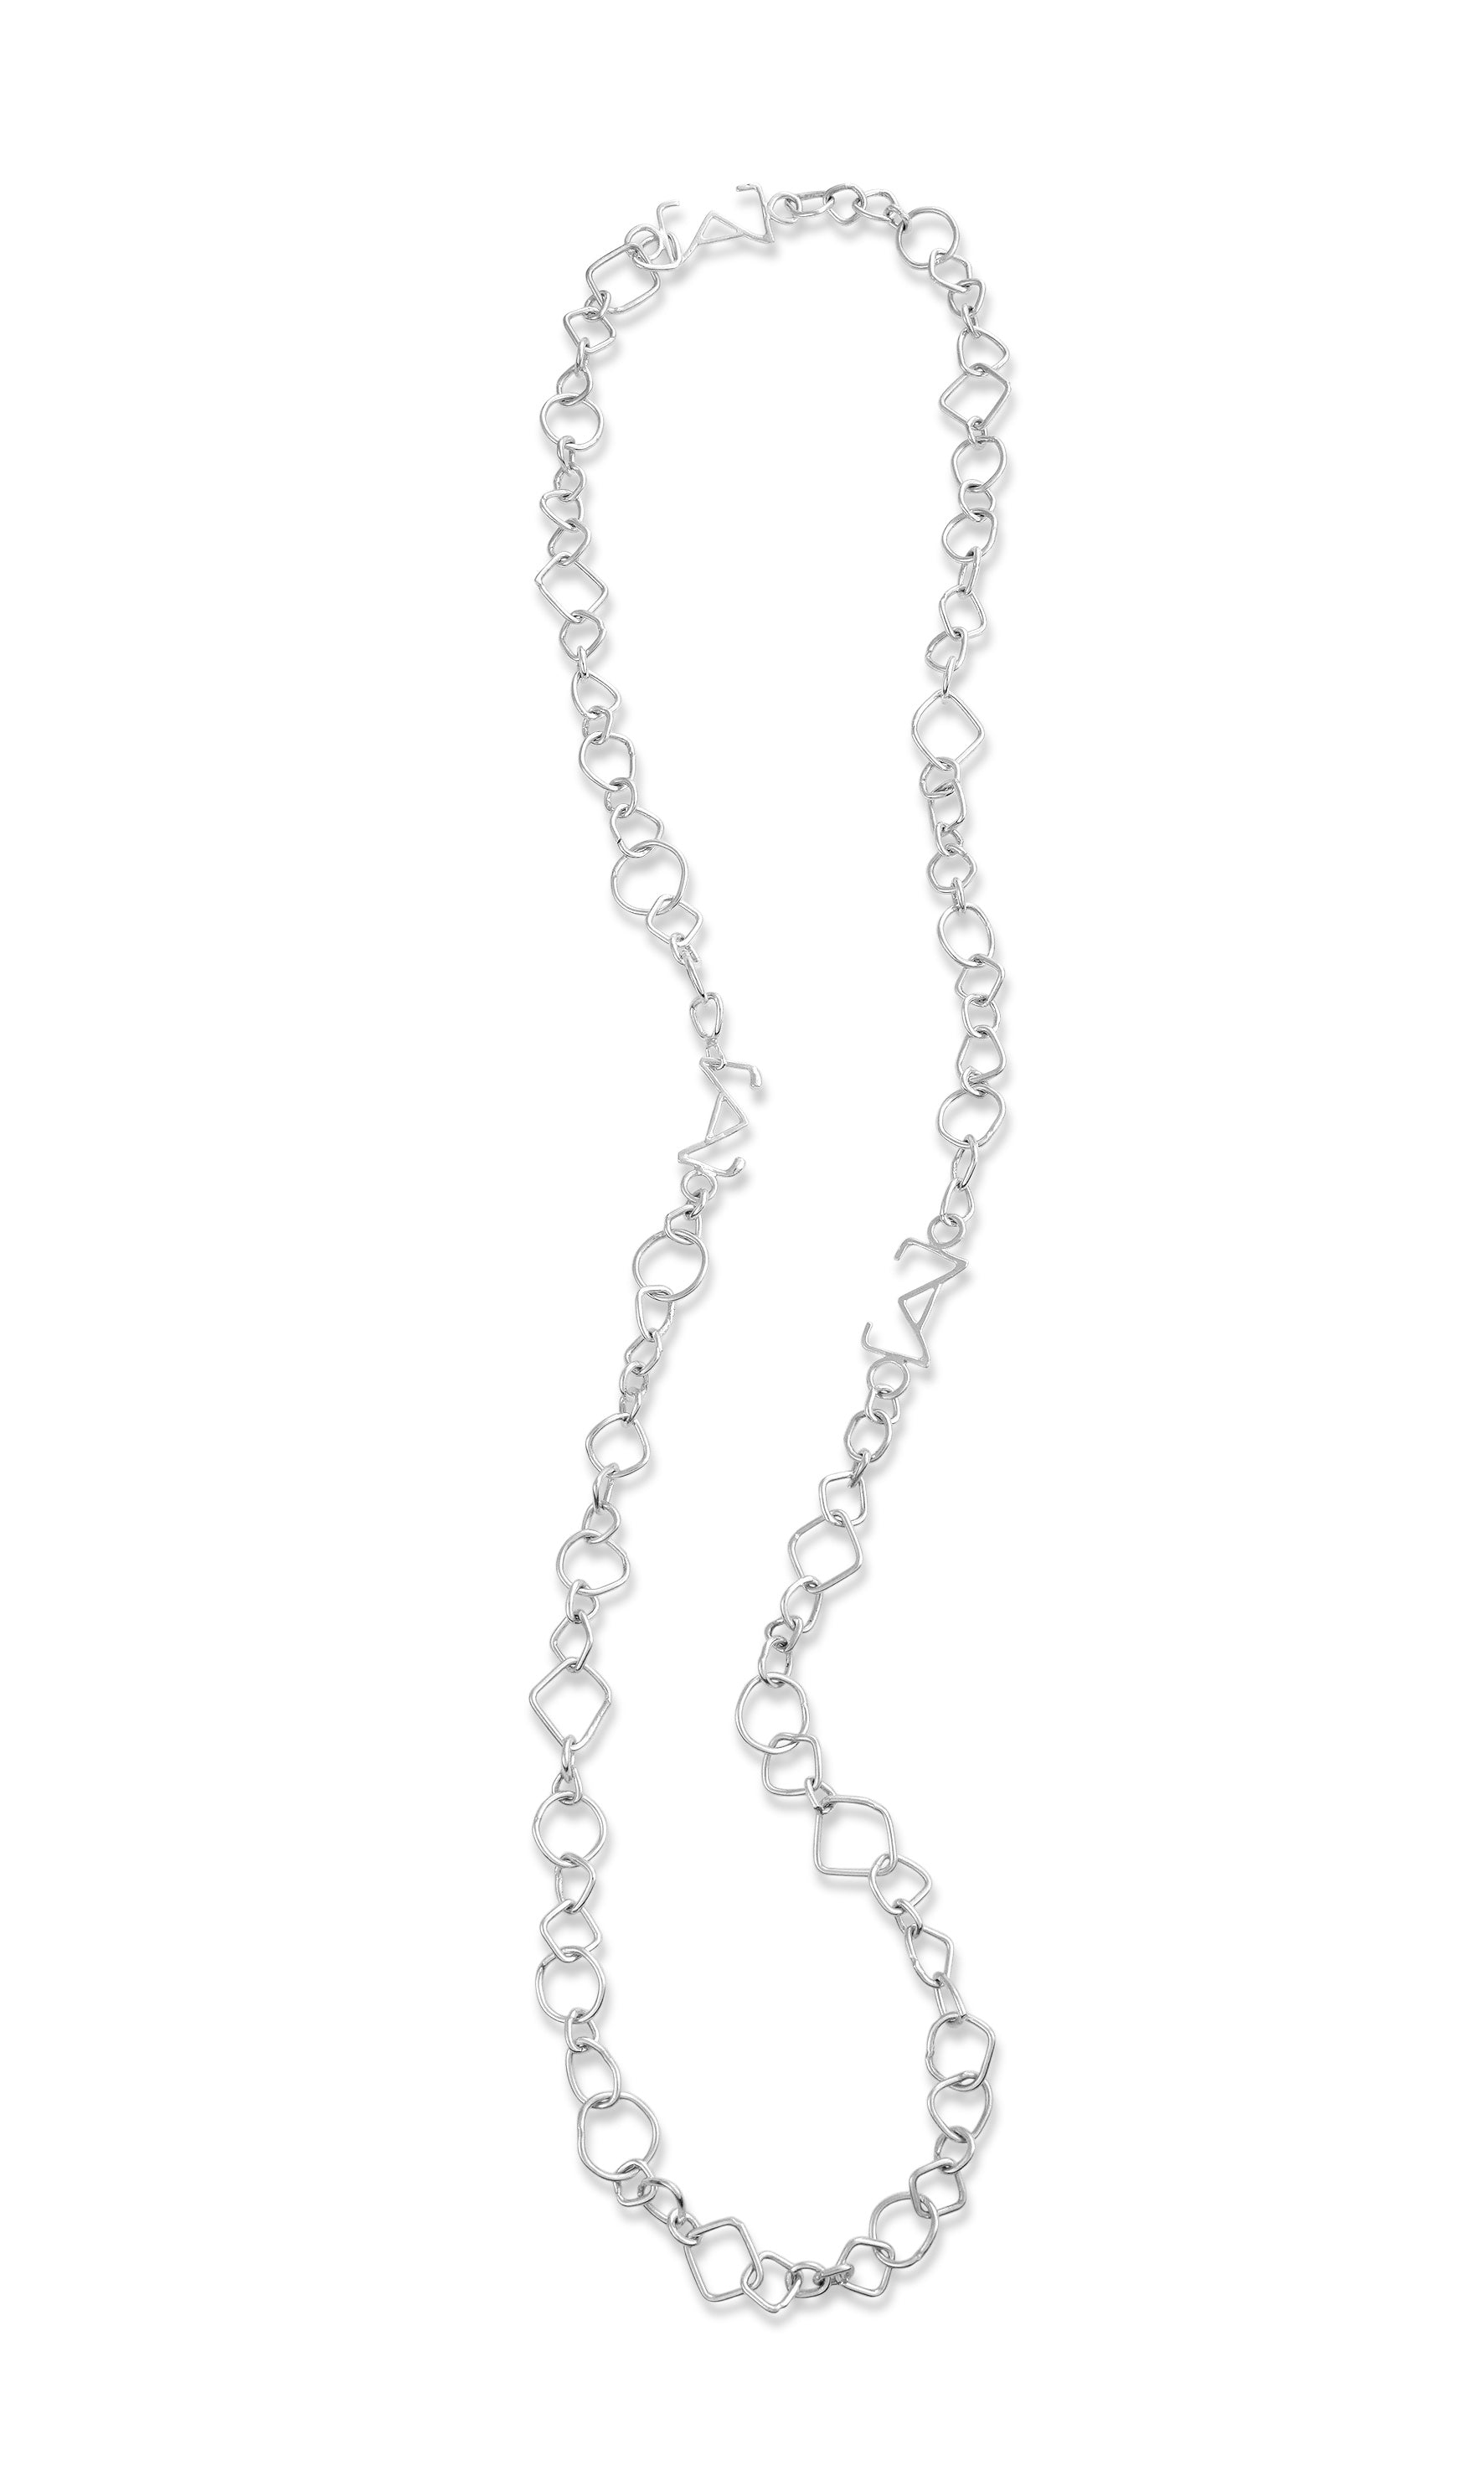 The Signature Chain